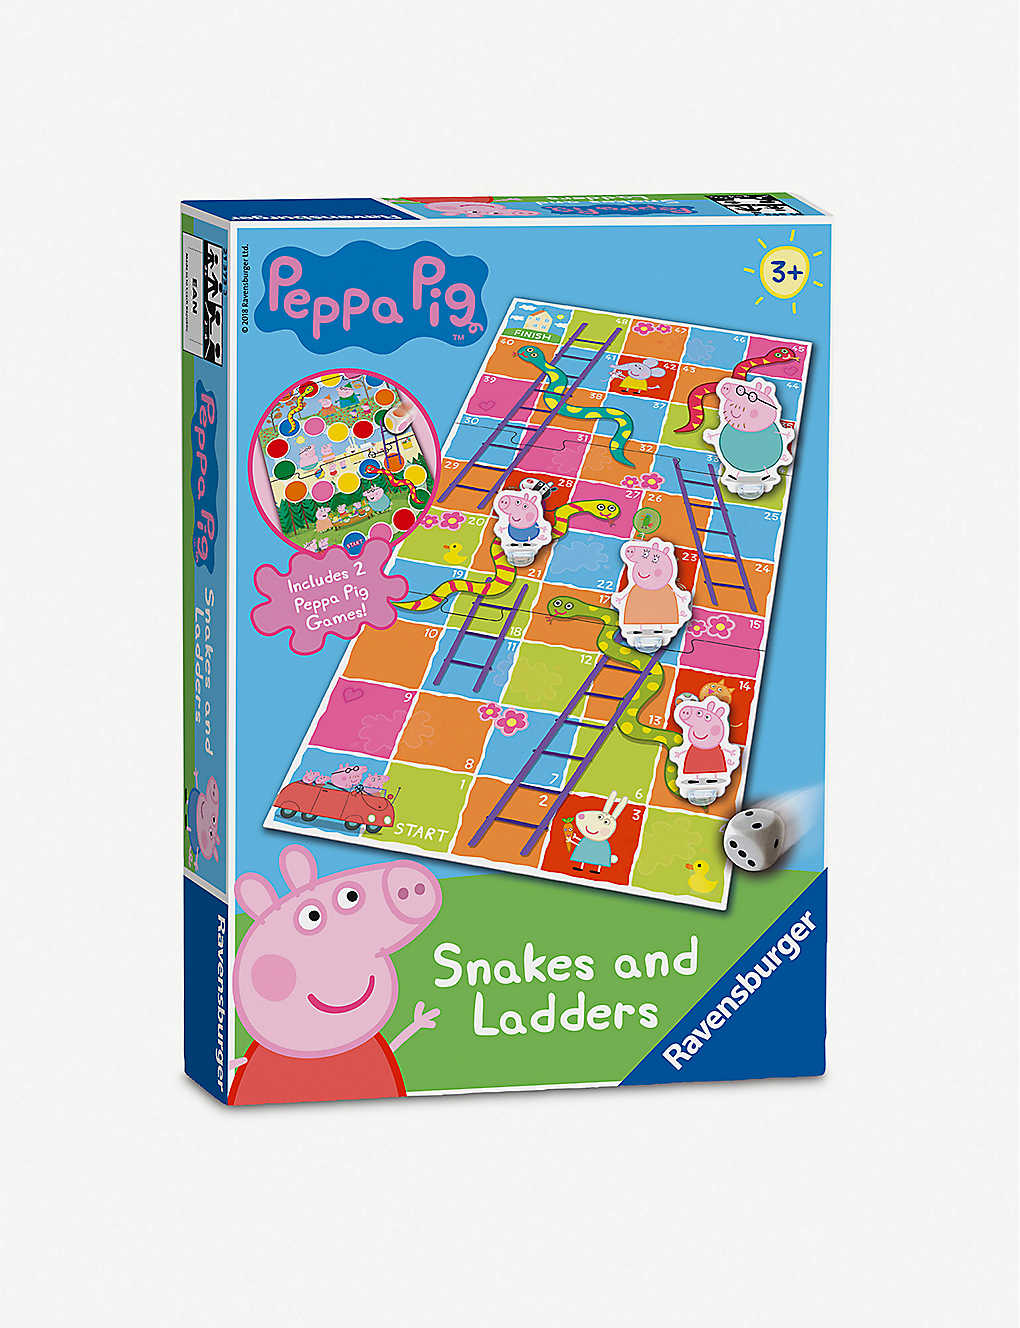 PEPPA PIG: Snakes & Ladders board game